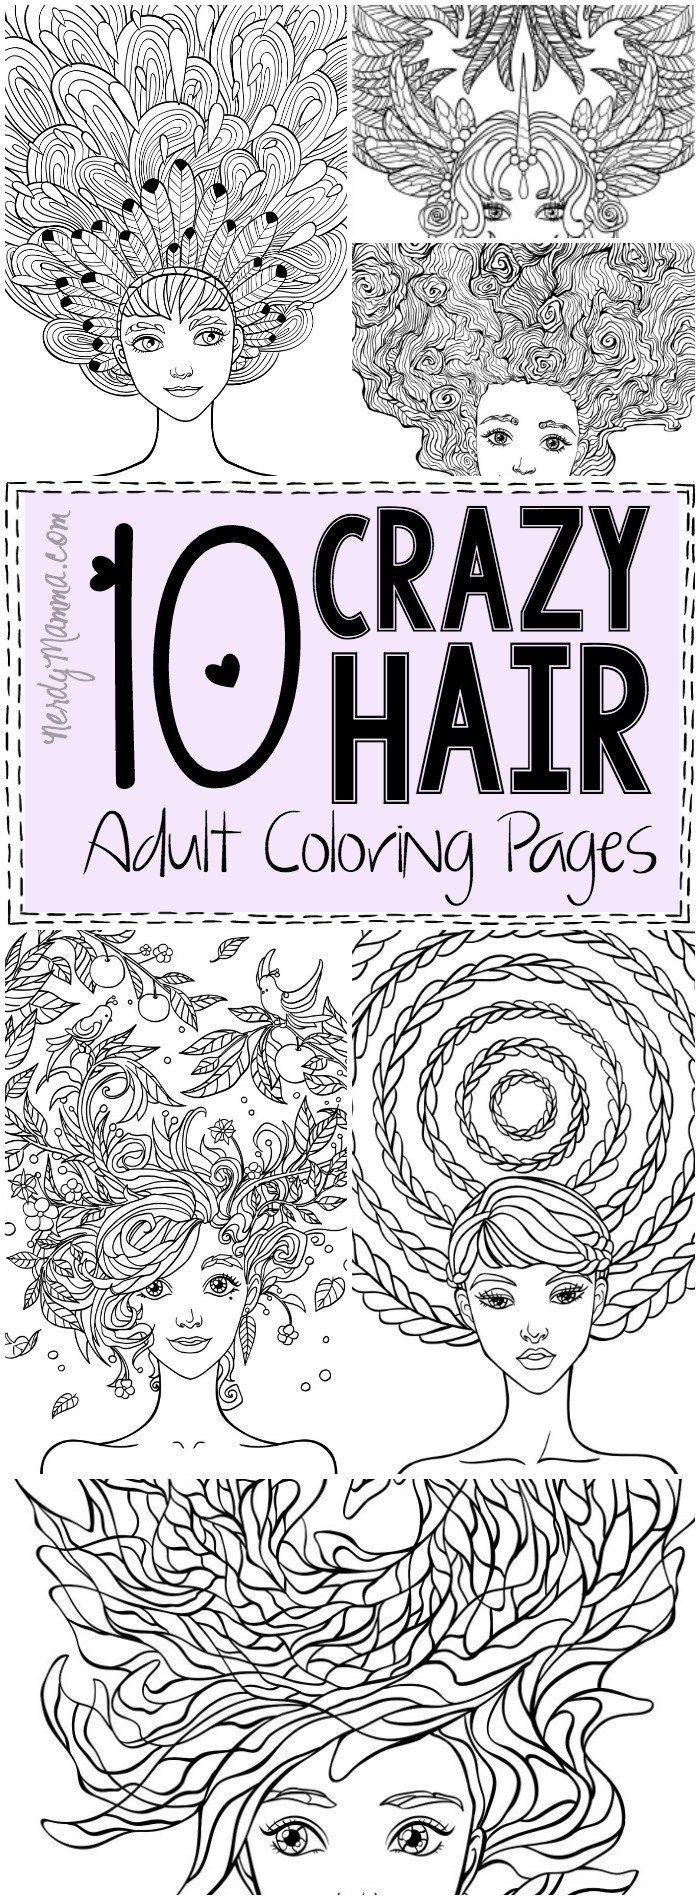 10 Crazy Hair Adult Coloring Pages | Best Crazy hair ideas